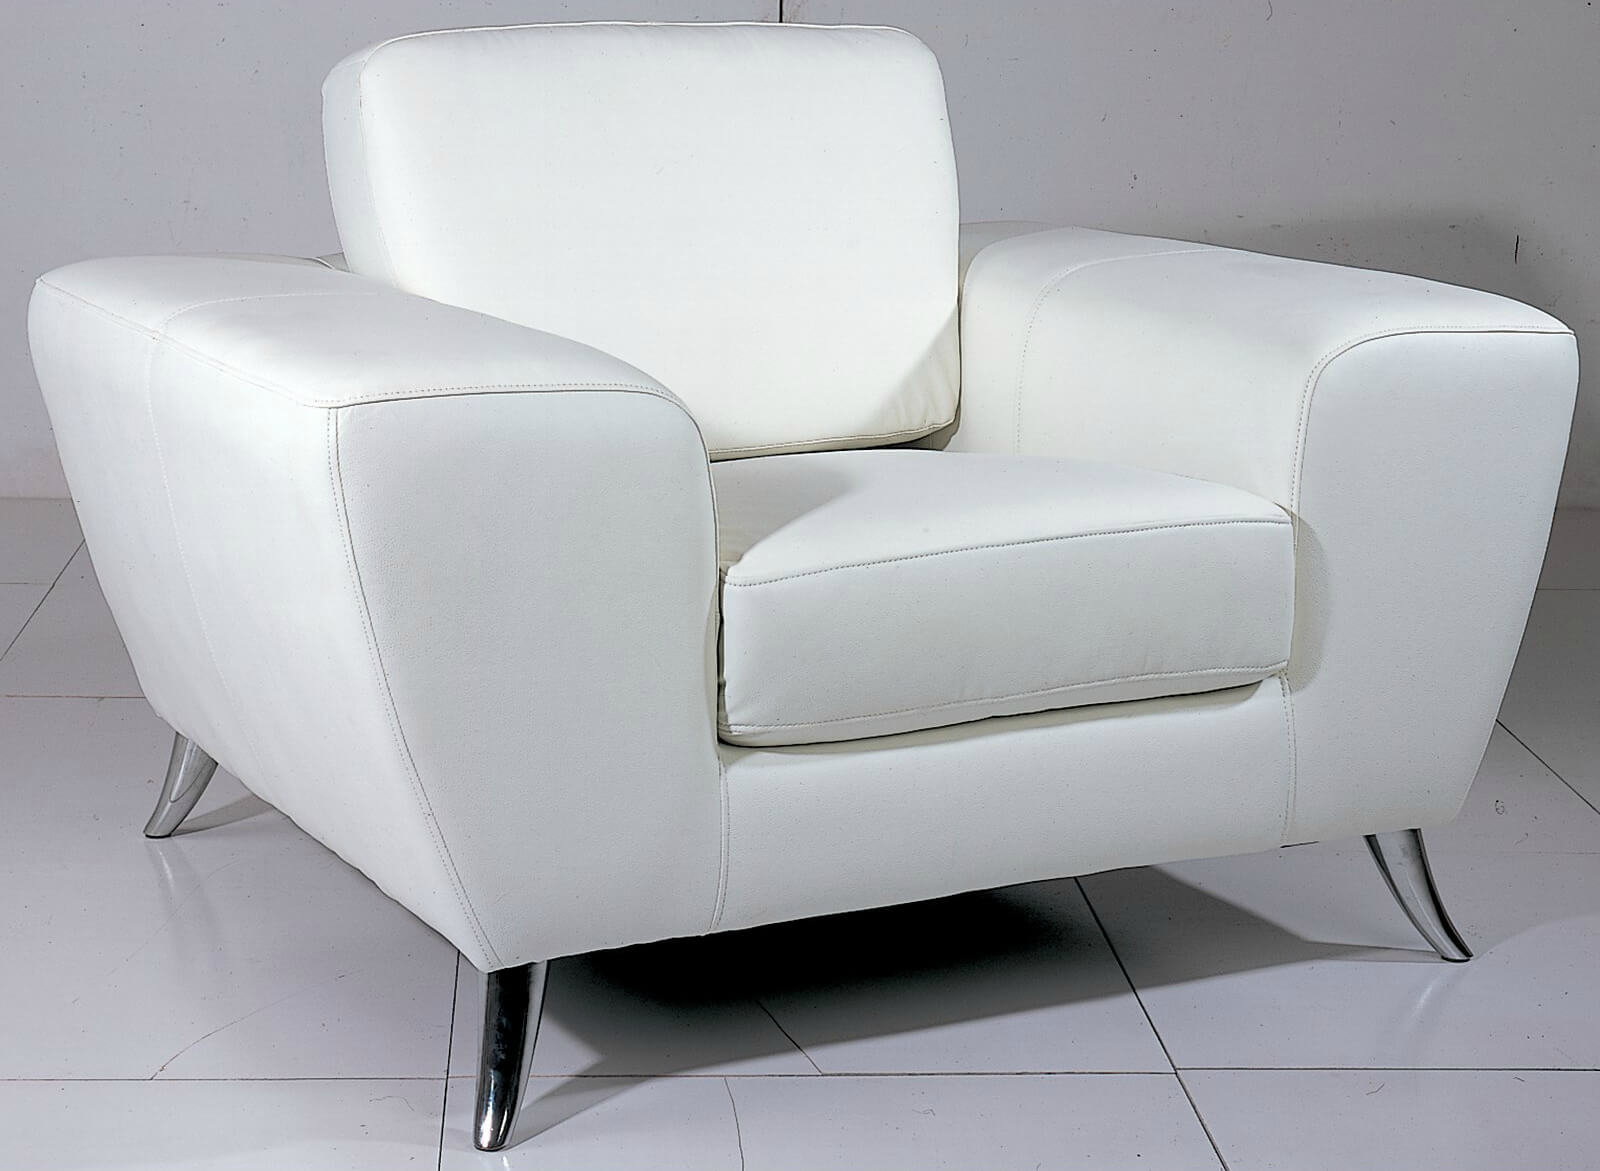 modern leather accent chairs outdoor wood lounge chair 37 white for the living room this top grain from beverly hills furniture is constructed of kiln dried hardwood